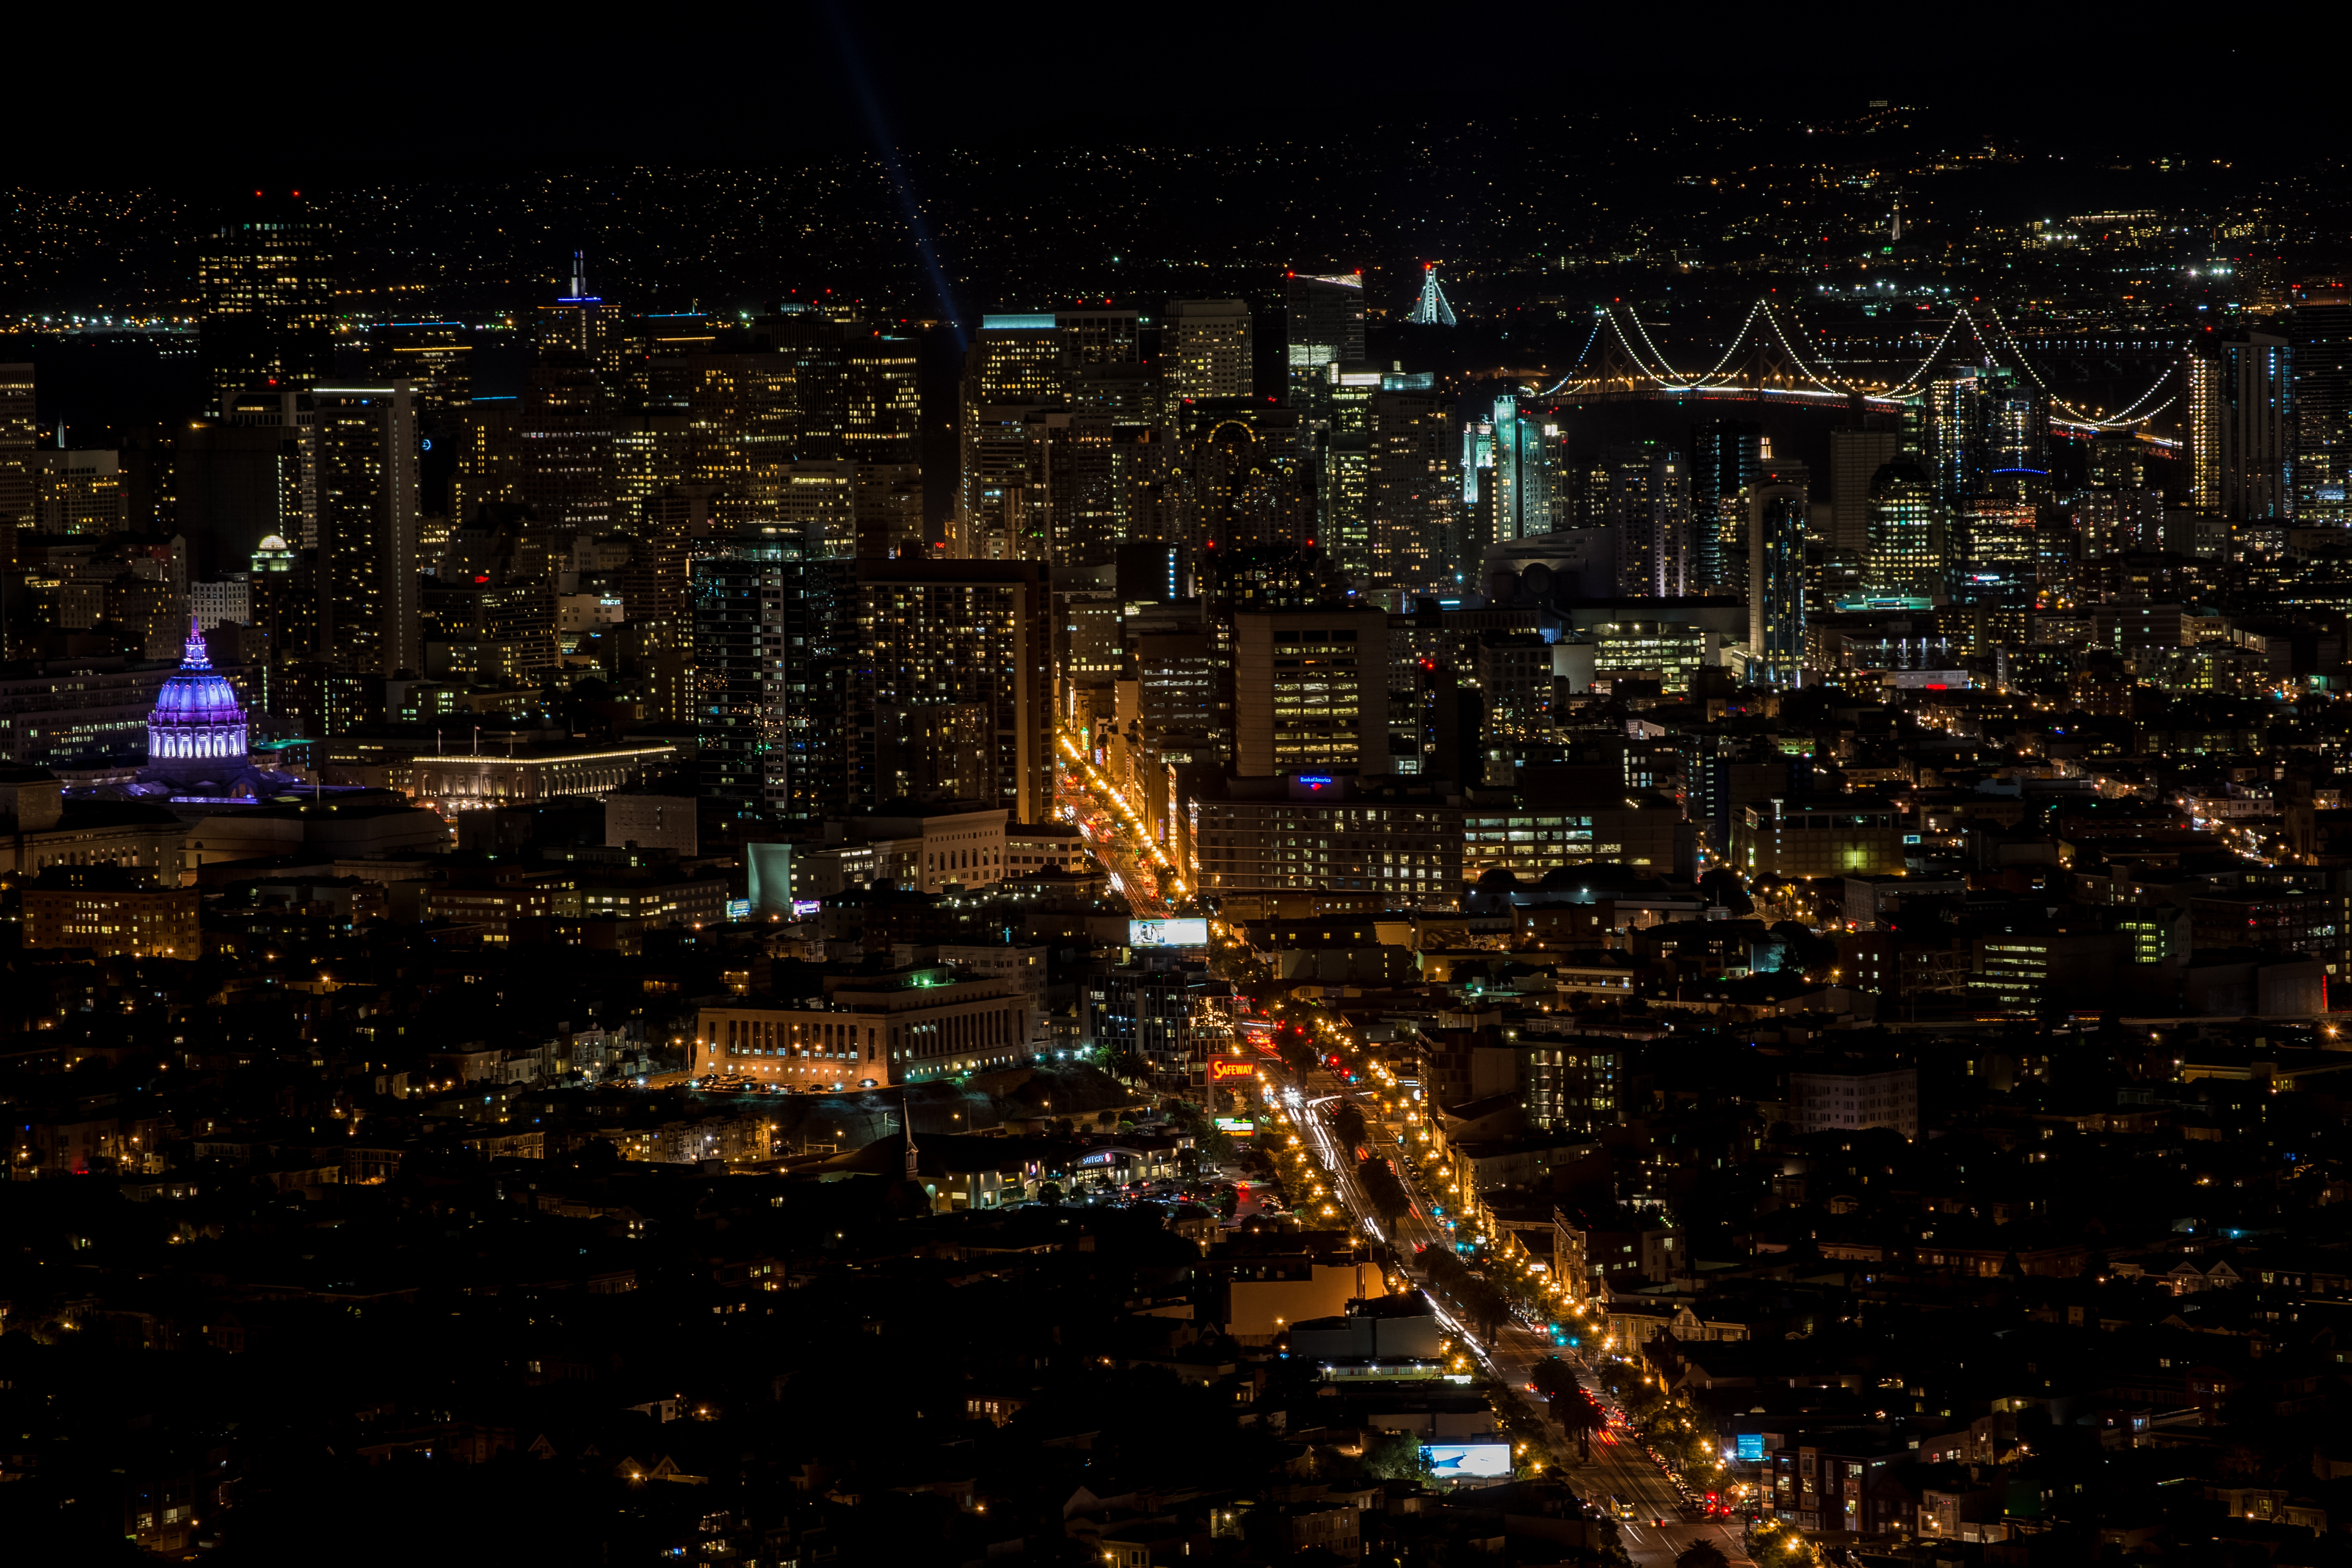 Night Life, Aerial, Building, Life, Night, HQ Photo